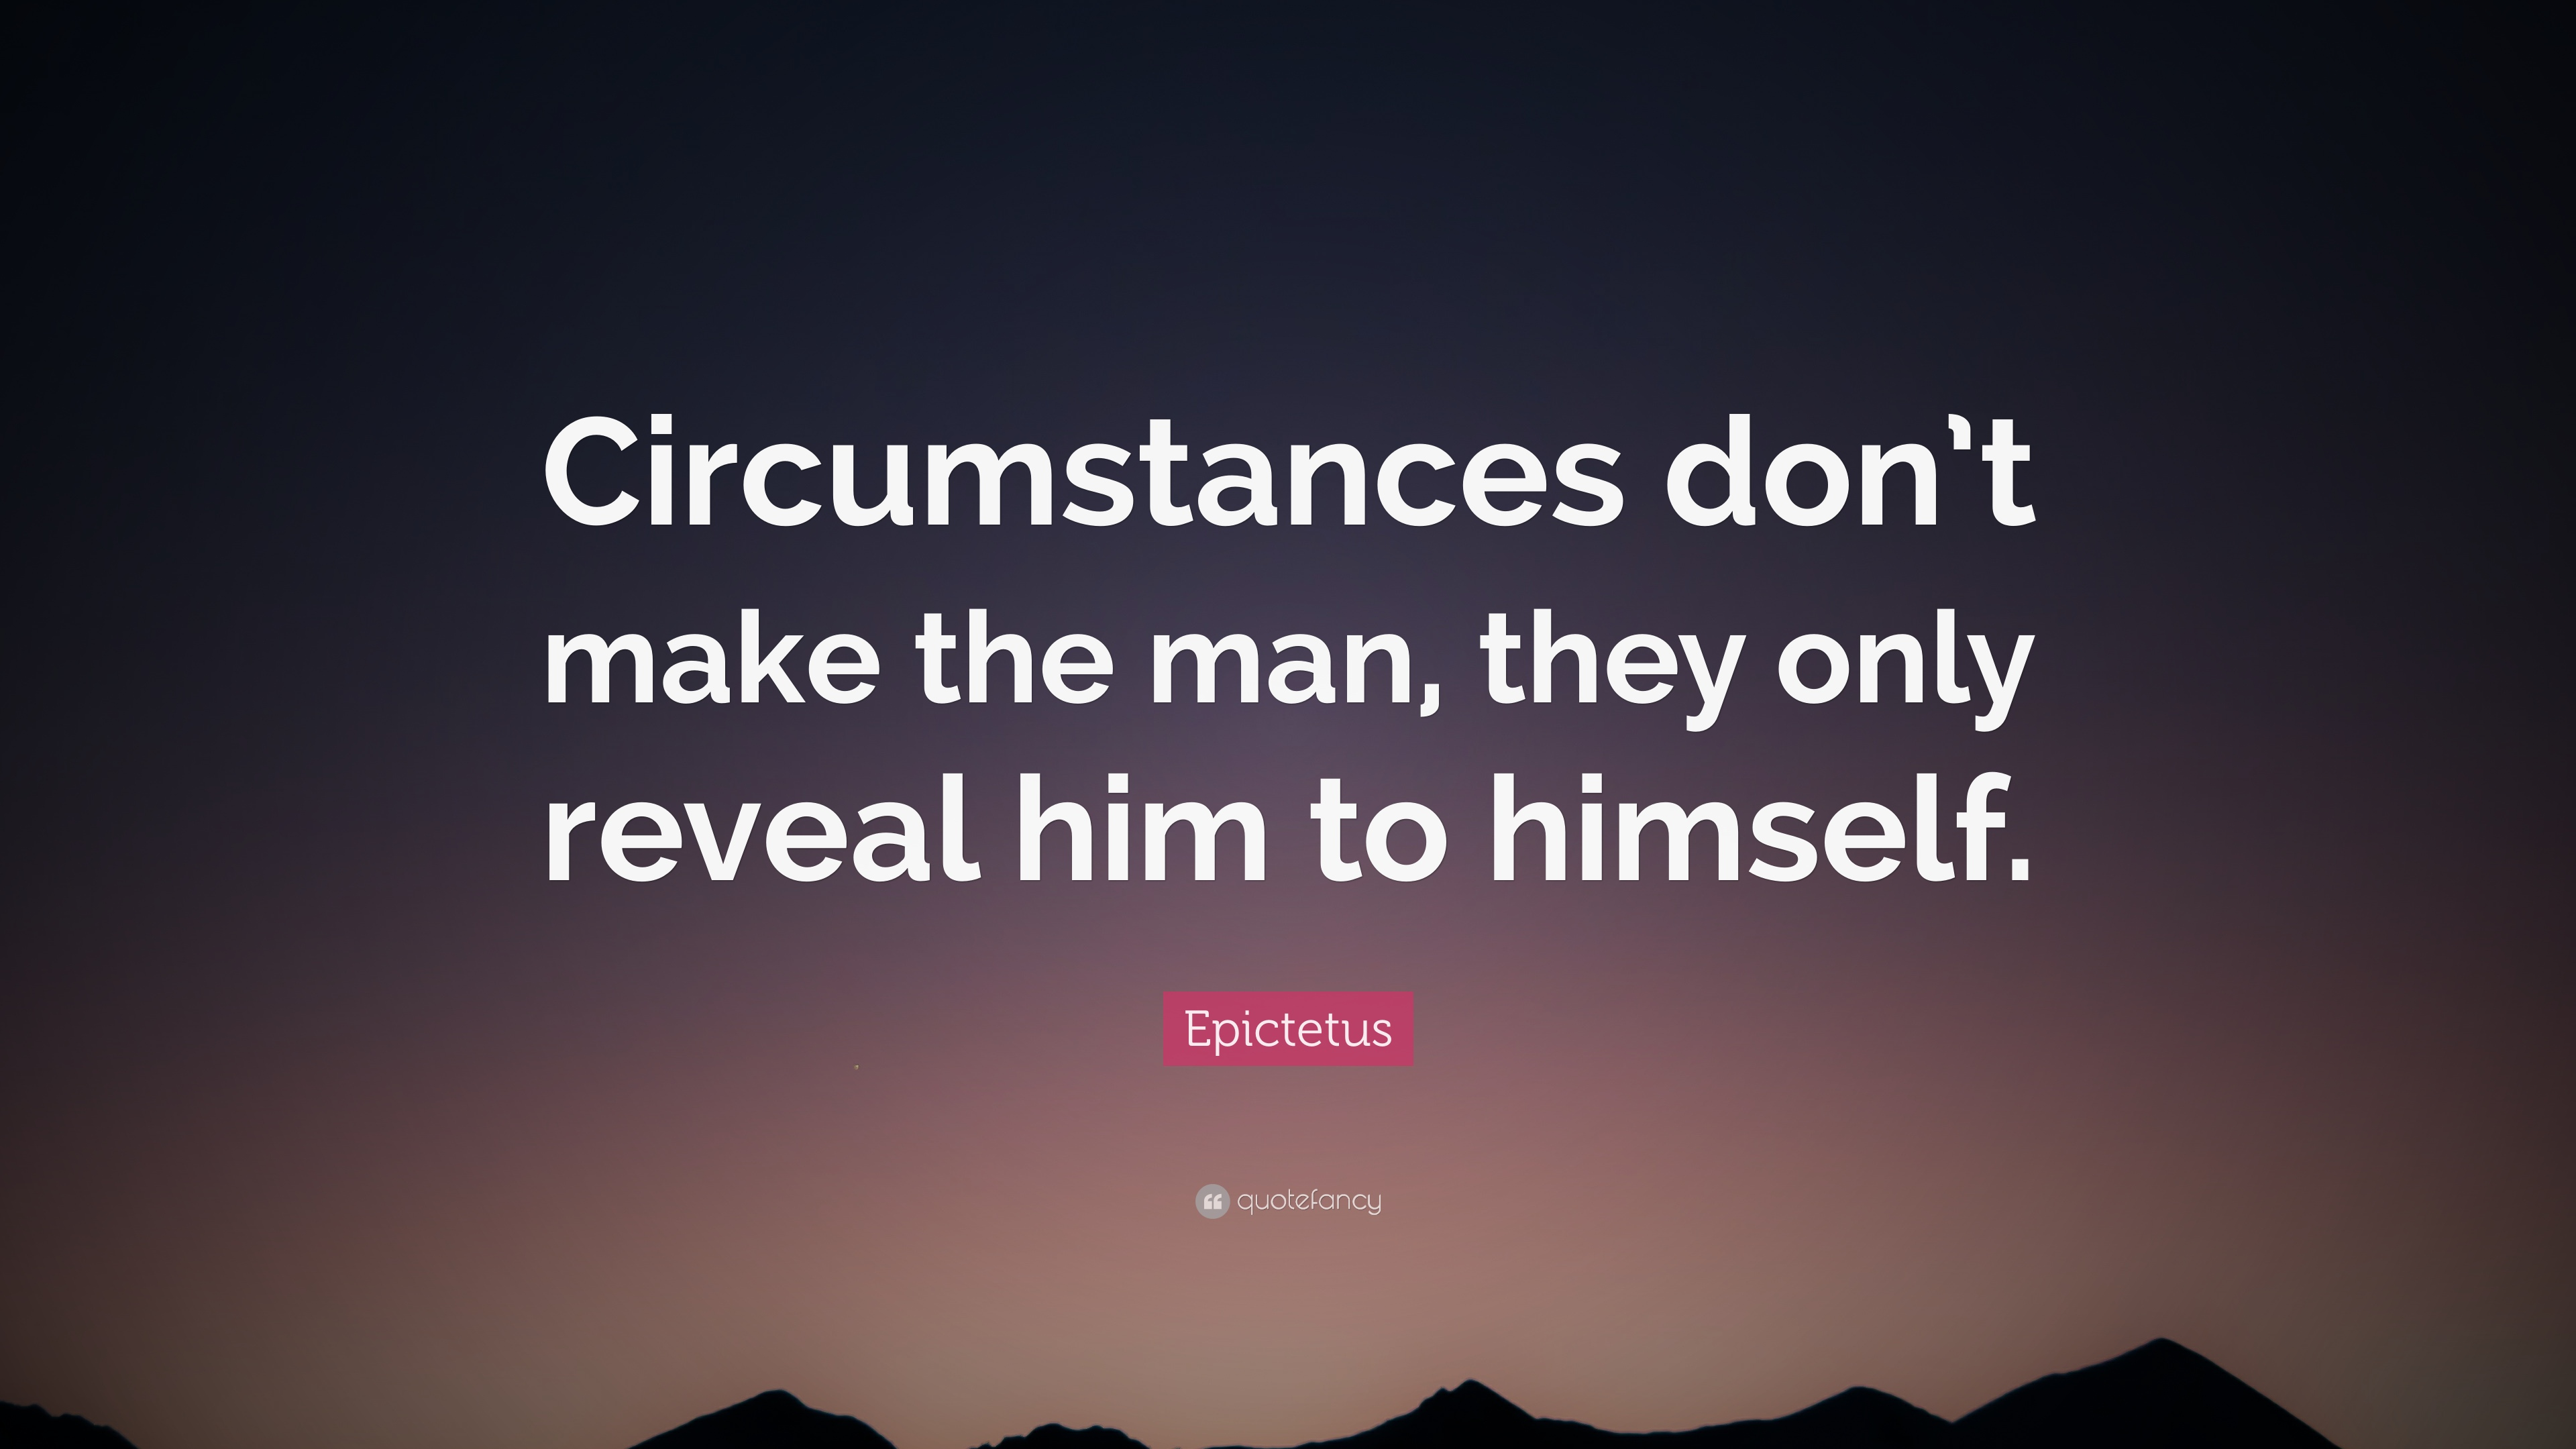 epictetus quote circumstances don t make the man they only reveal